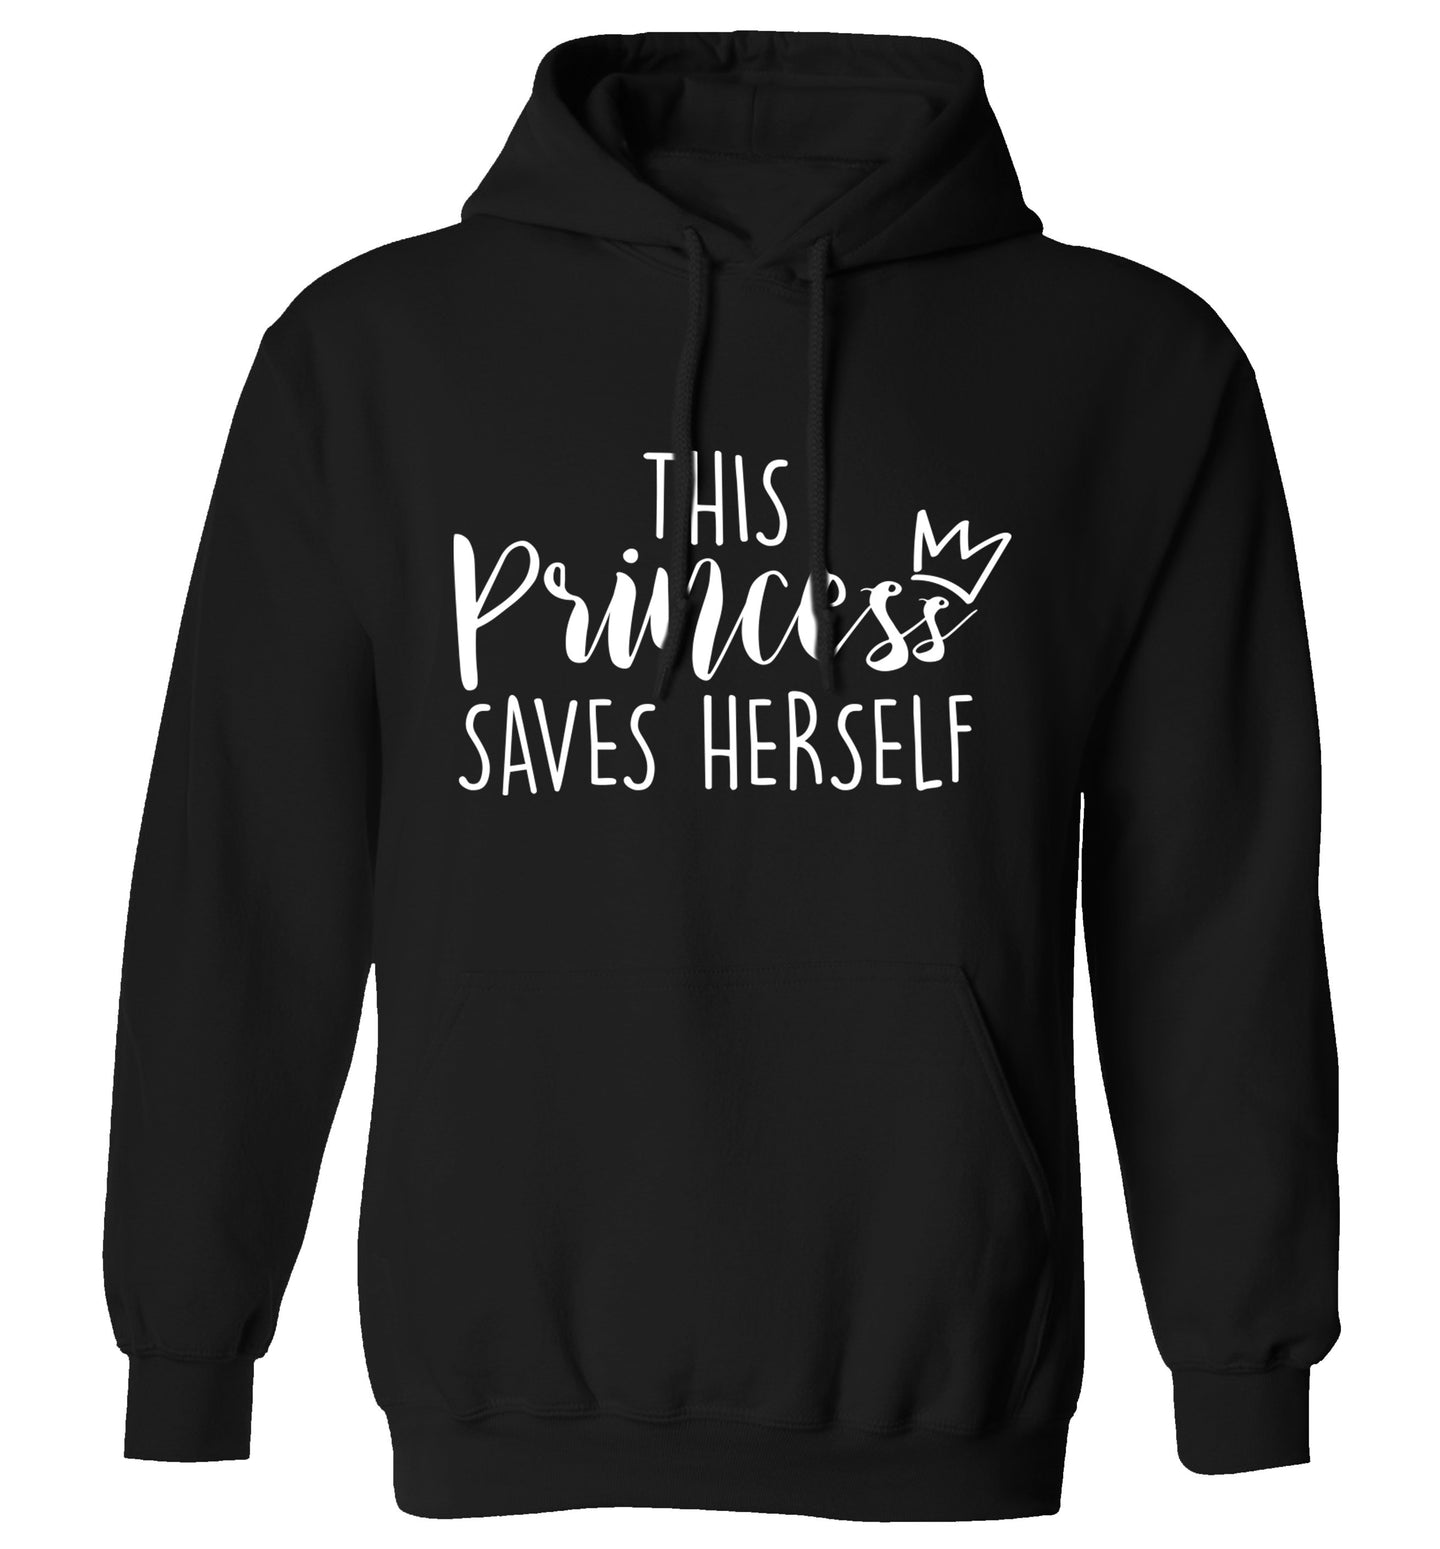 This princess saves herself adults unisex black hoodie 2XL